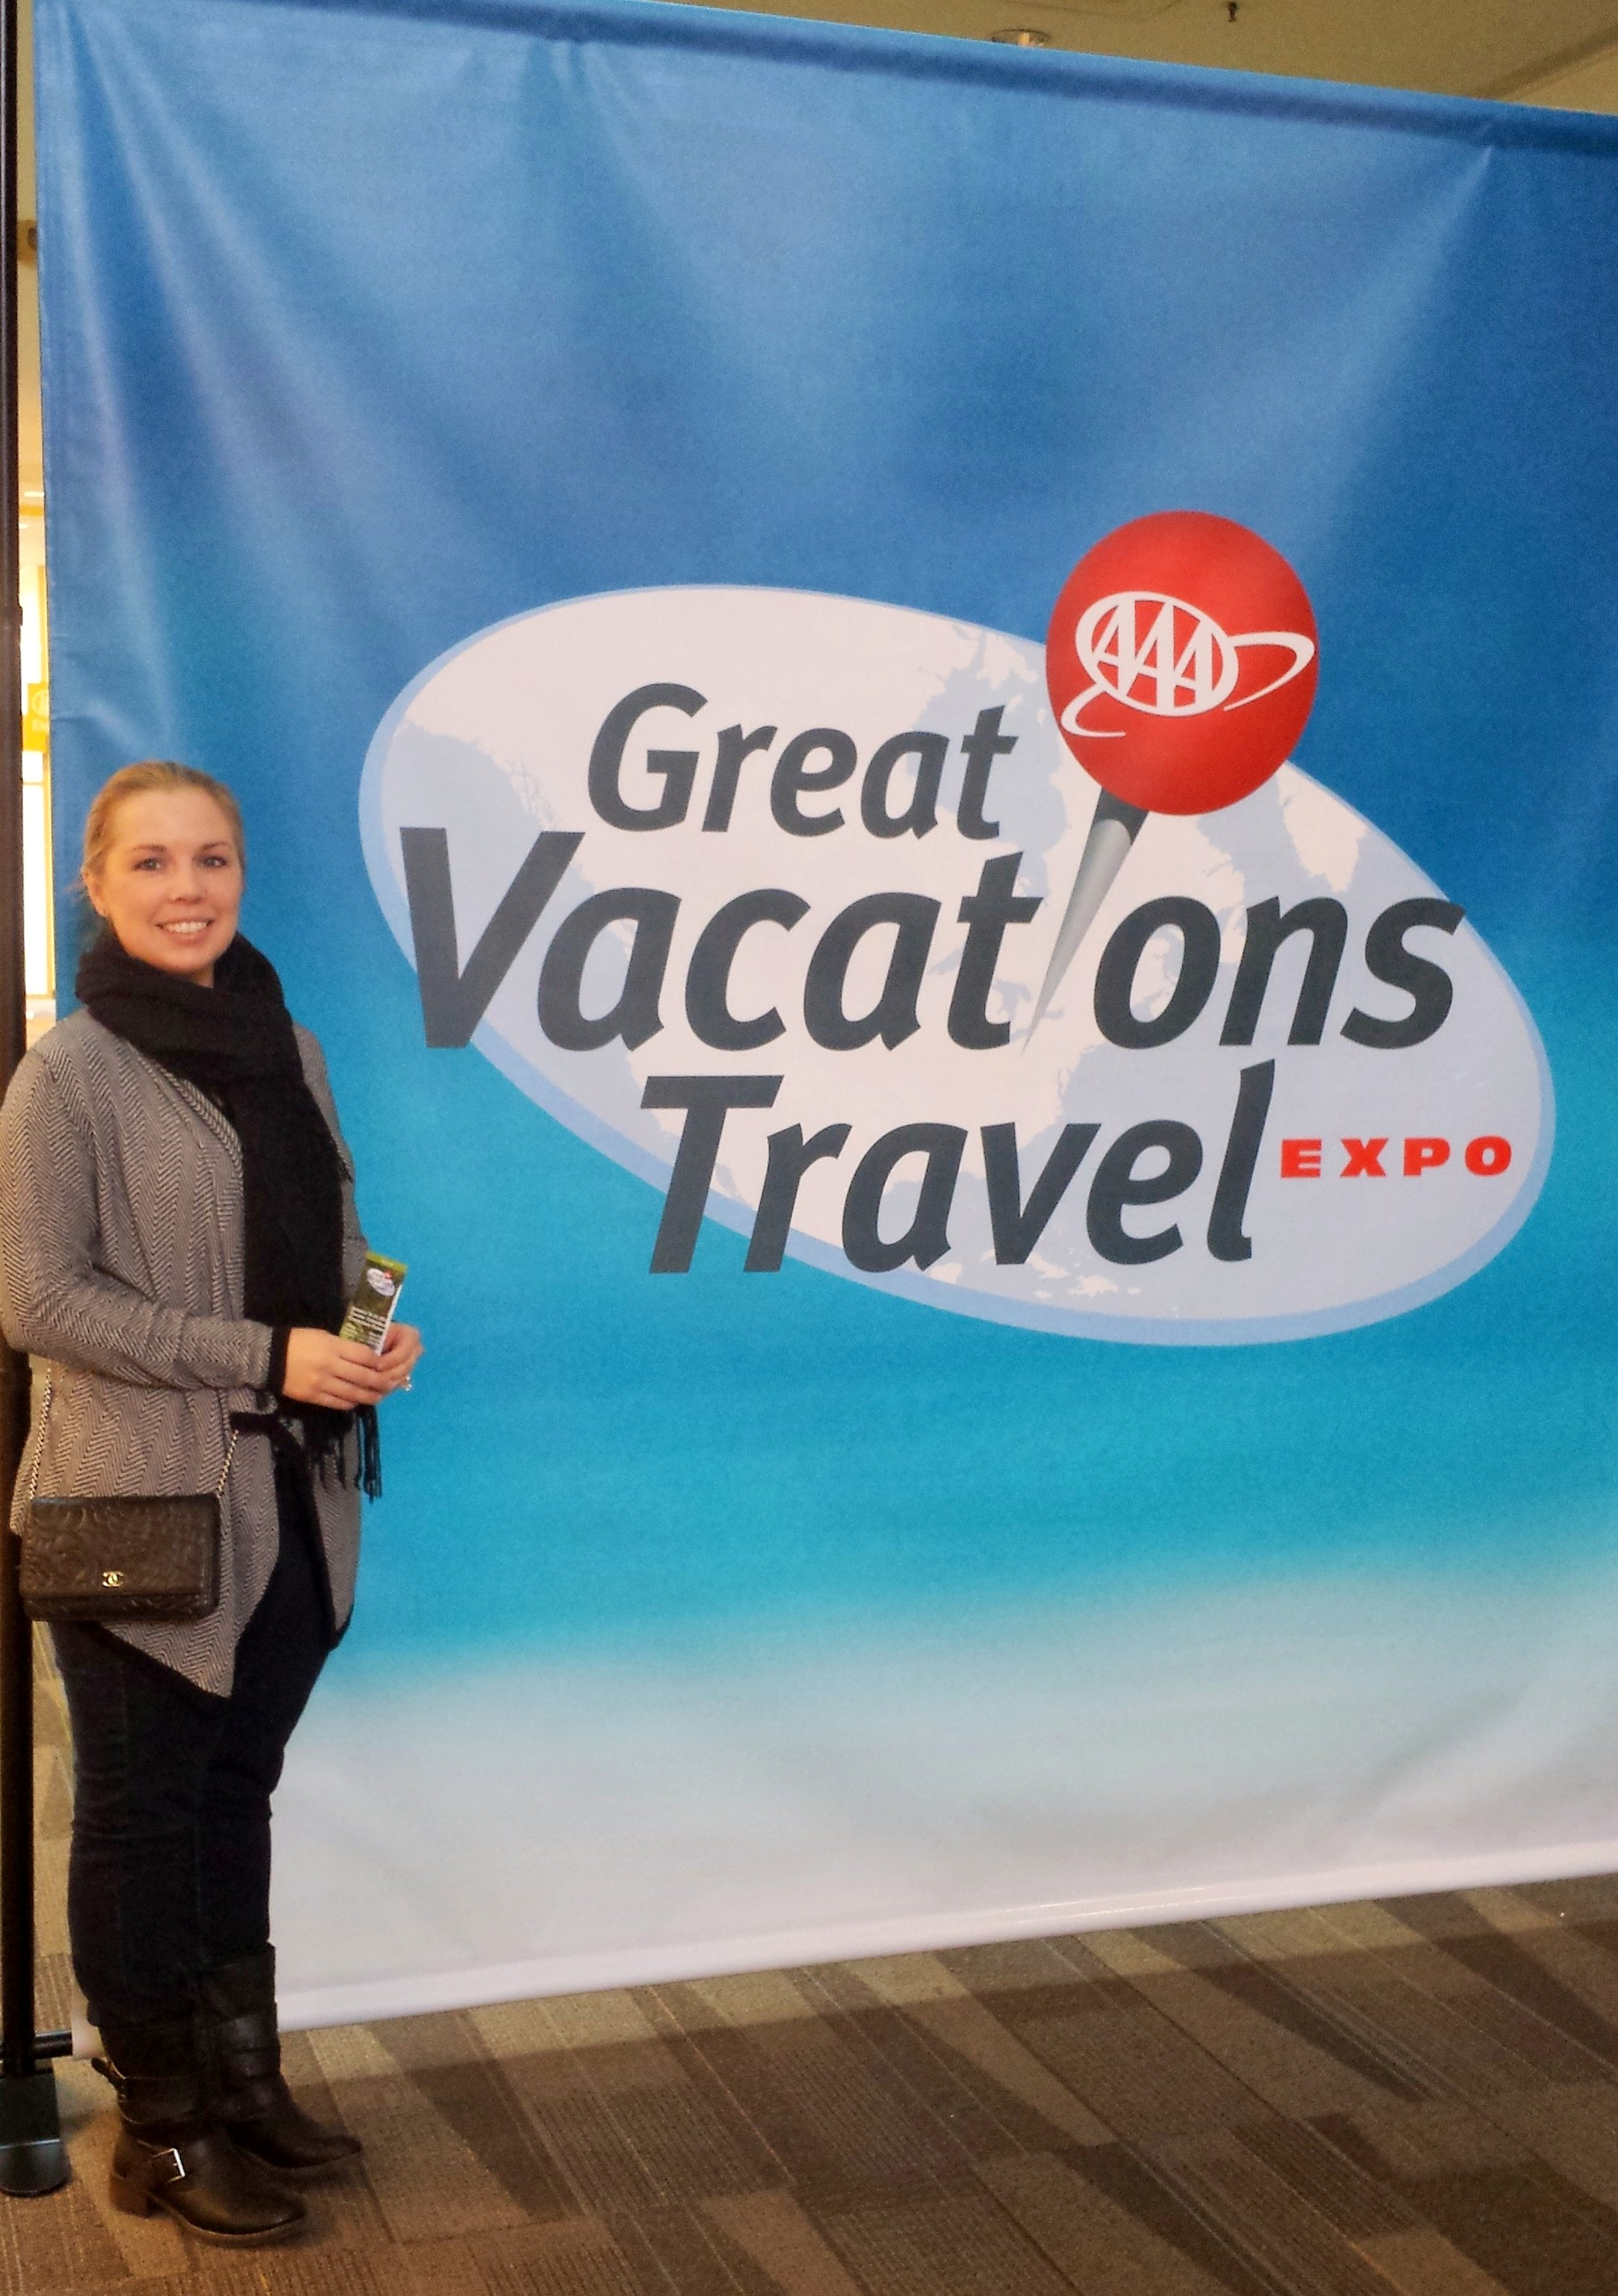 AAA Great Vacations Travel Expo  Ohio Girl Travels